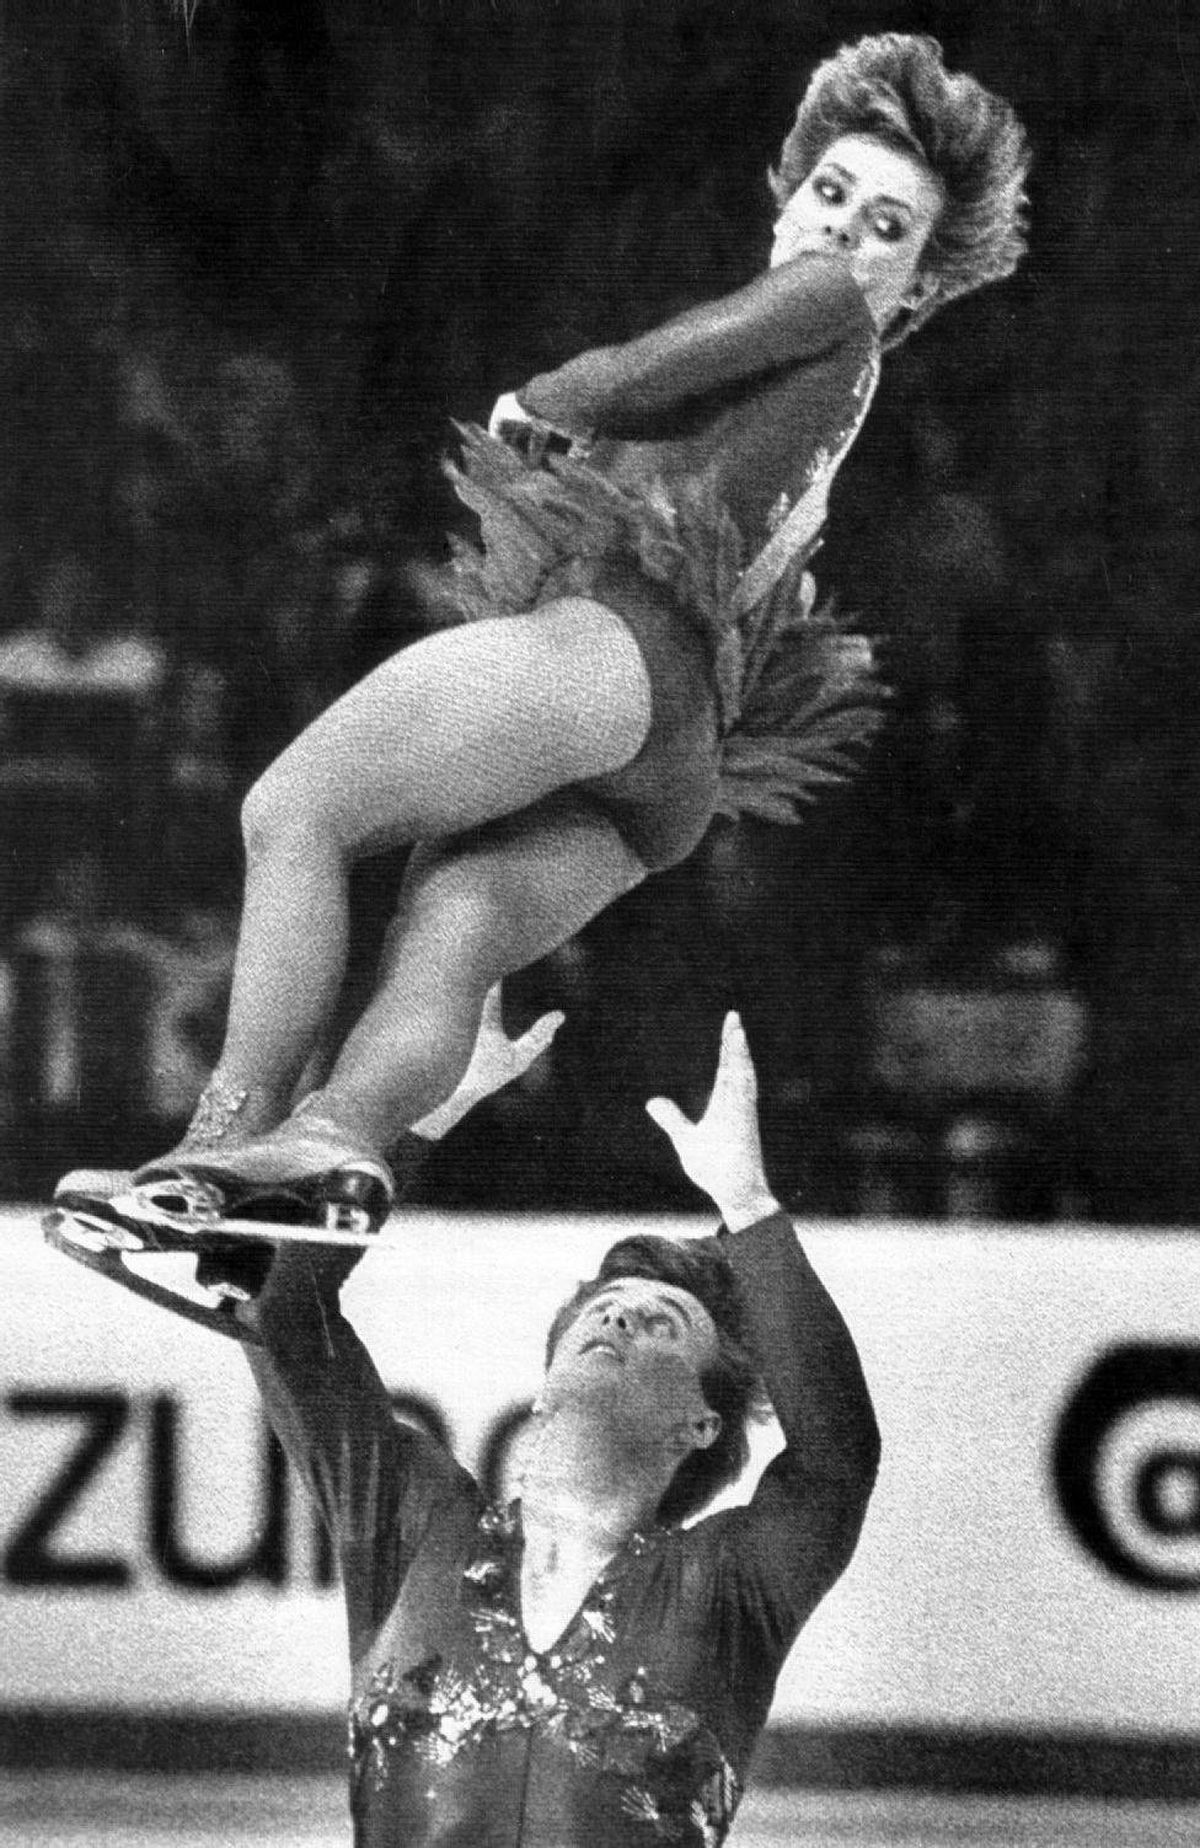 March 22, 1984, Ottawa: Canada's Barbara Underhill and Paul Martini perform their long program March 22nd, winning the gold medal at the World Figure Skating Championships.